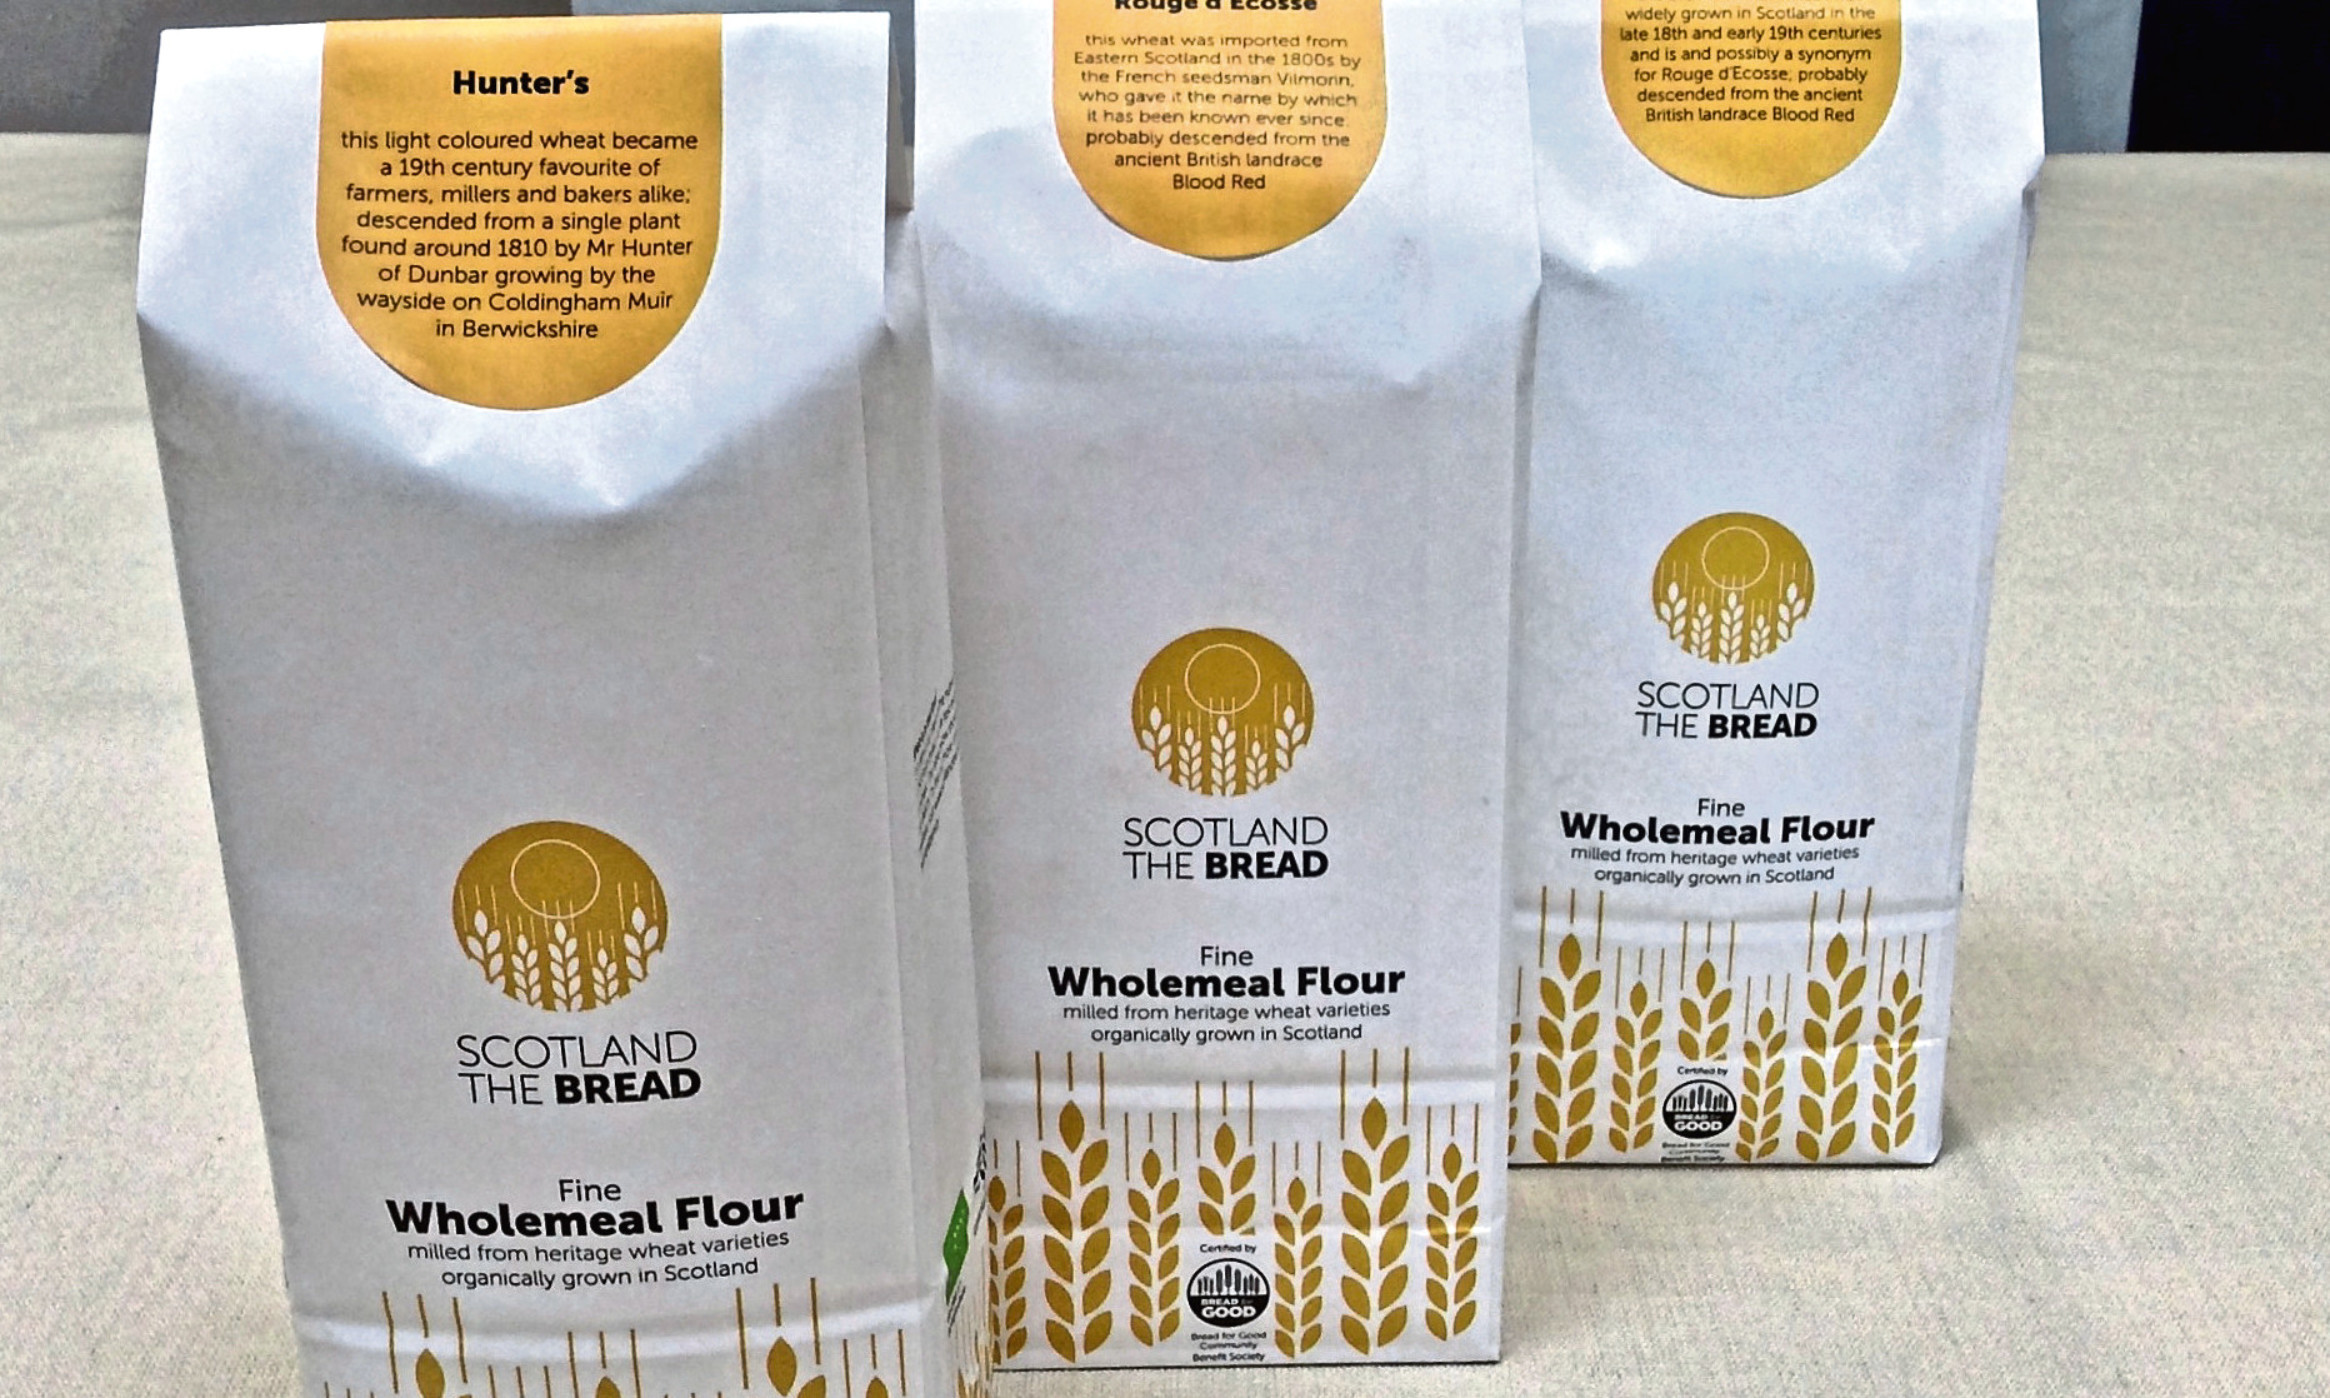 The mill will produce flour for sale as well as using it to produce bread in its bakery